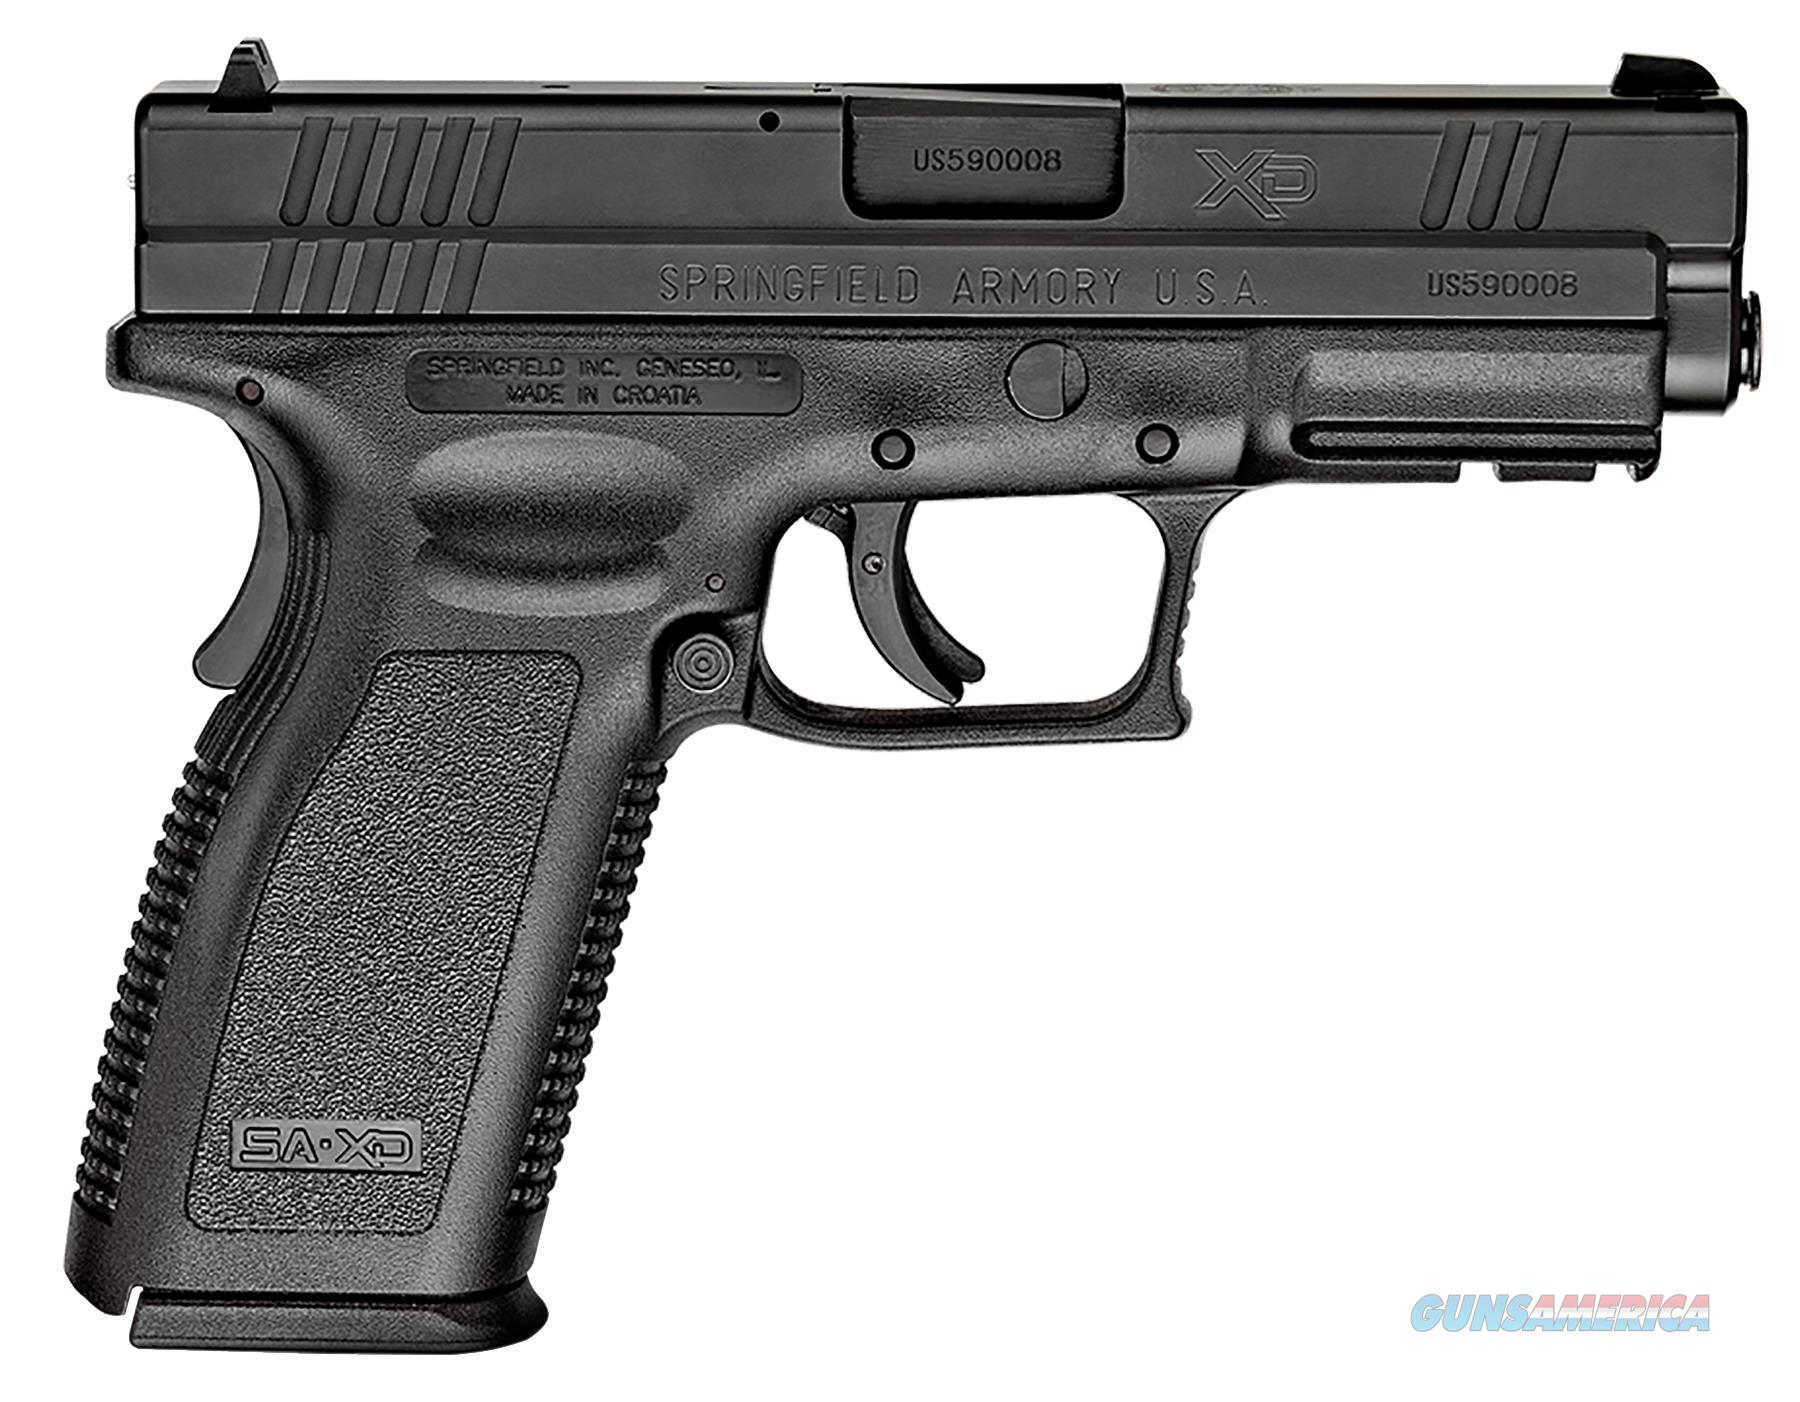 "SPRINGFIELD XD9103 XD ESSENTIAL 4"" FULL SIZE CA APPR 357SIG DAO 4"" 10+1 POLY GRI XD9103  Guns > Pistols > Springfield Armory Pistols > XD (eXtreme Duty)"